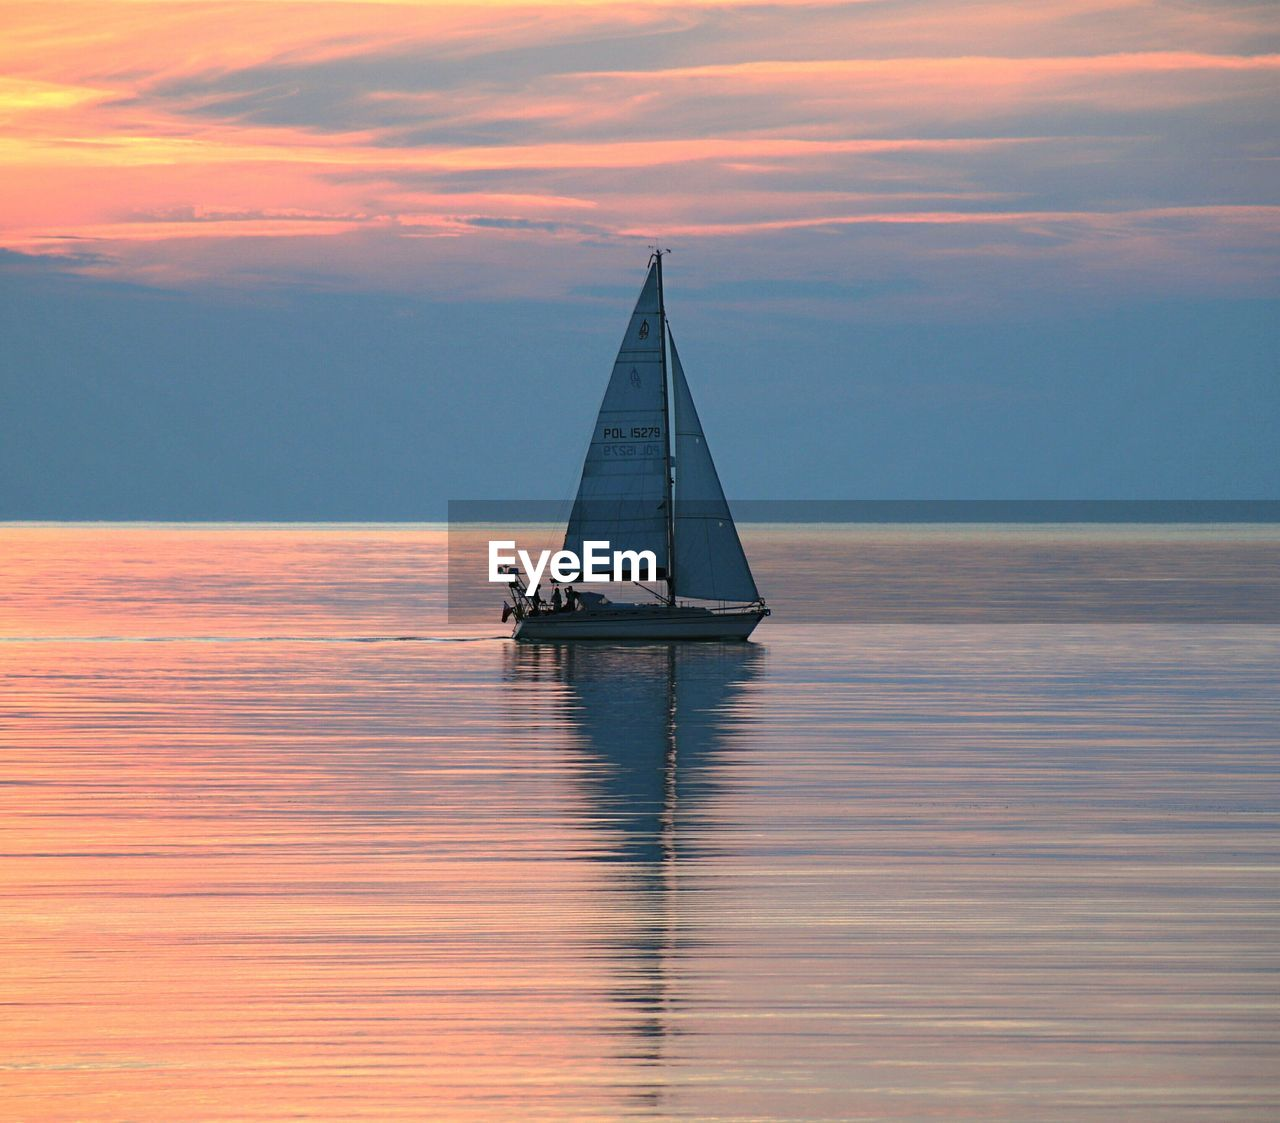 sunset, sea, water, sky, nature, beauty in nature, waterfront, tranquility, reflection, scenics, nautical vessel, transportation, tranquil scene, horizon over water, sailboat, outdoors, cloud - sky, no people, sailing, day